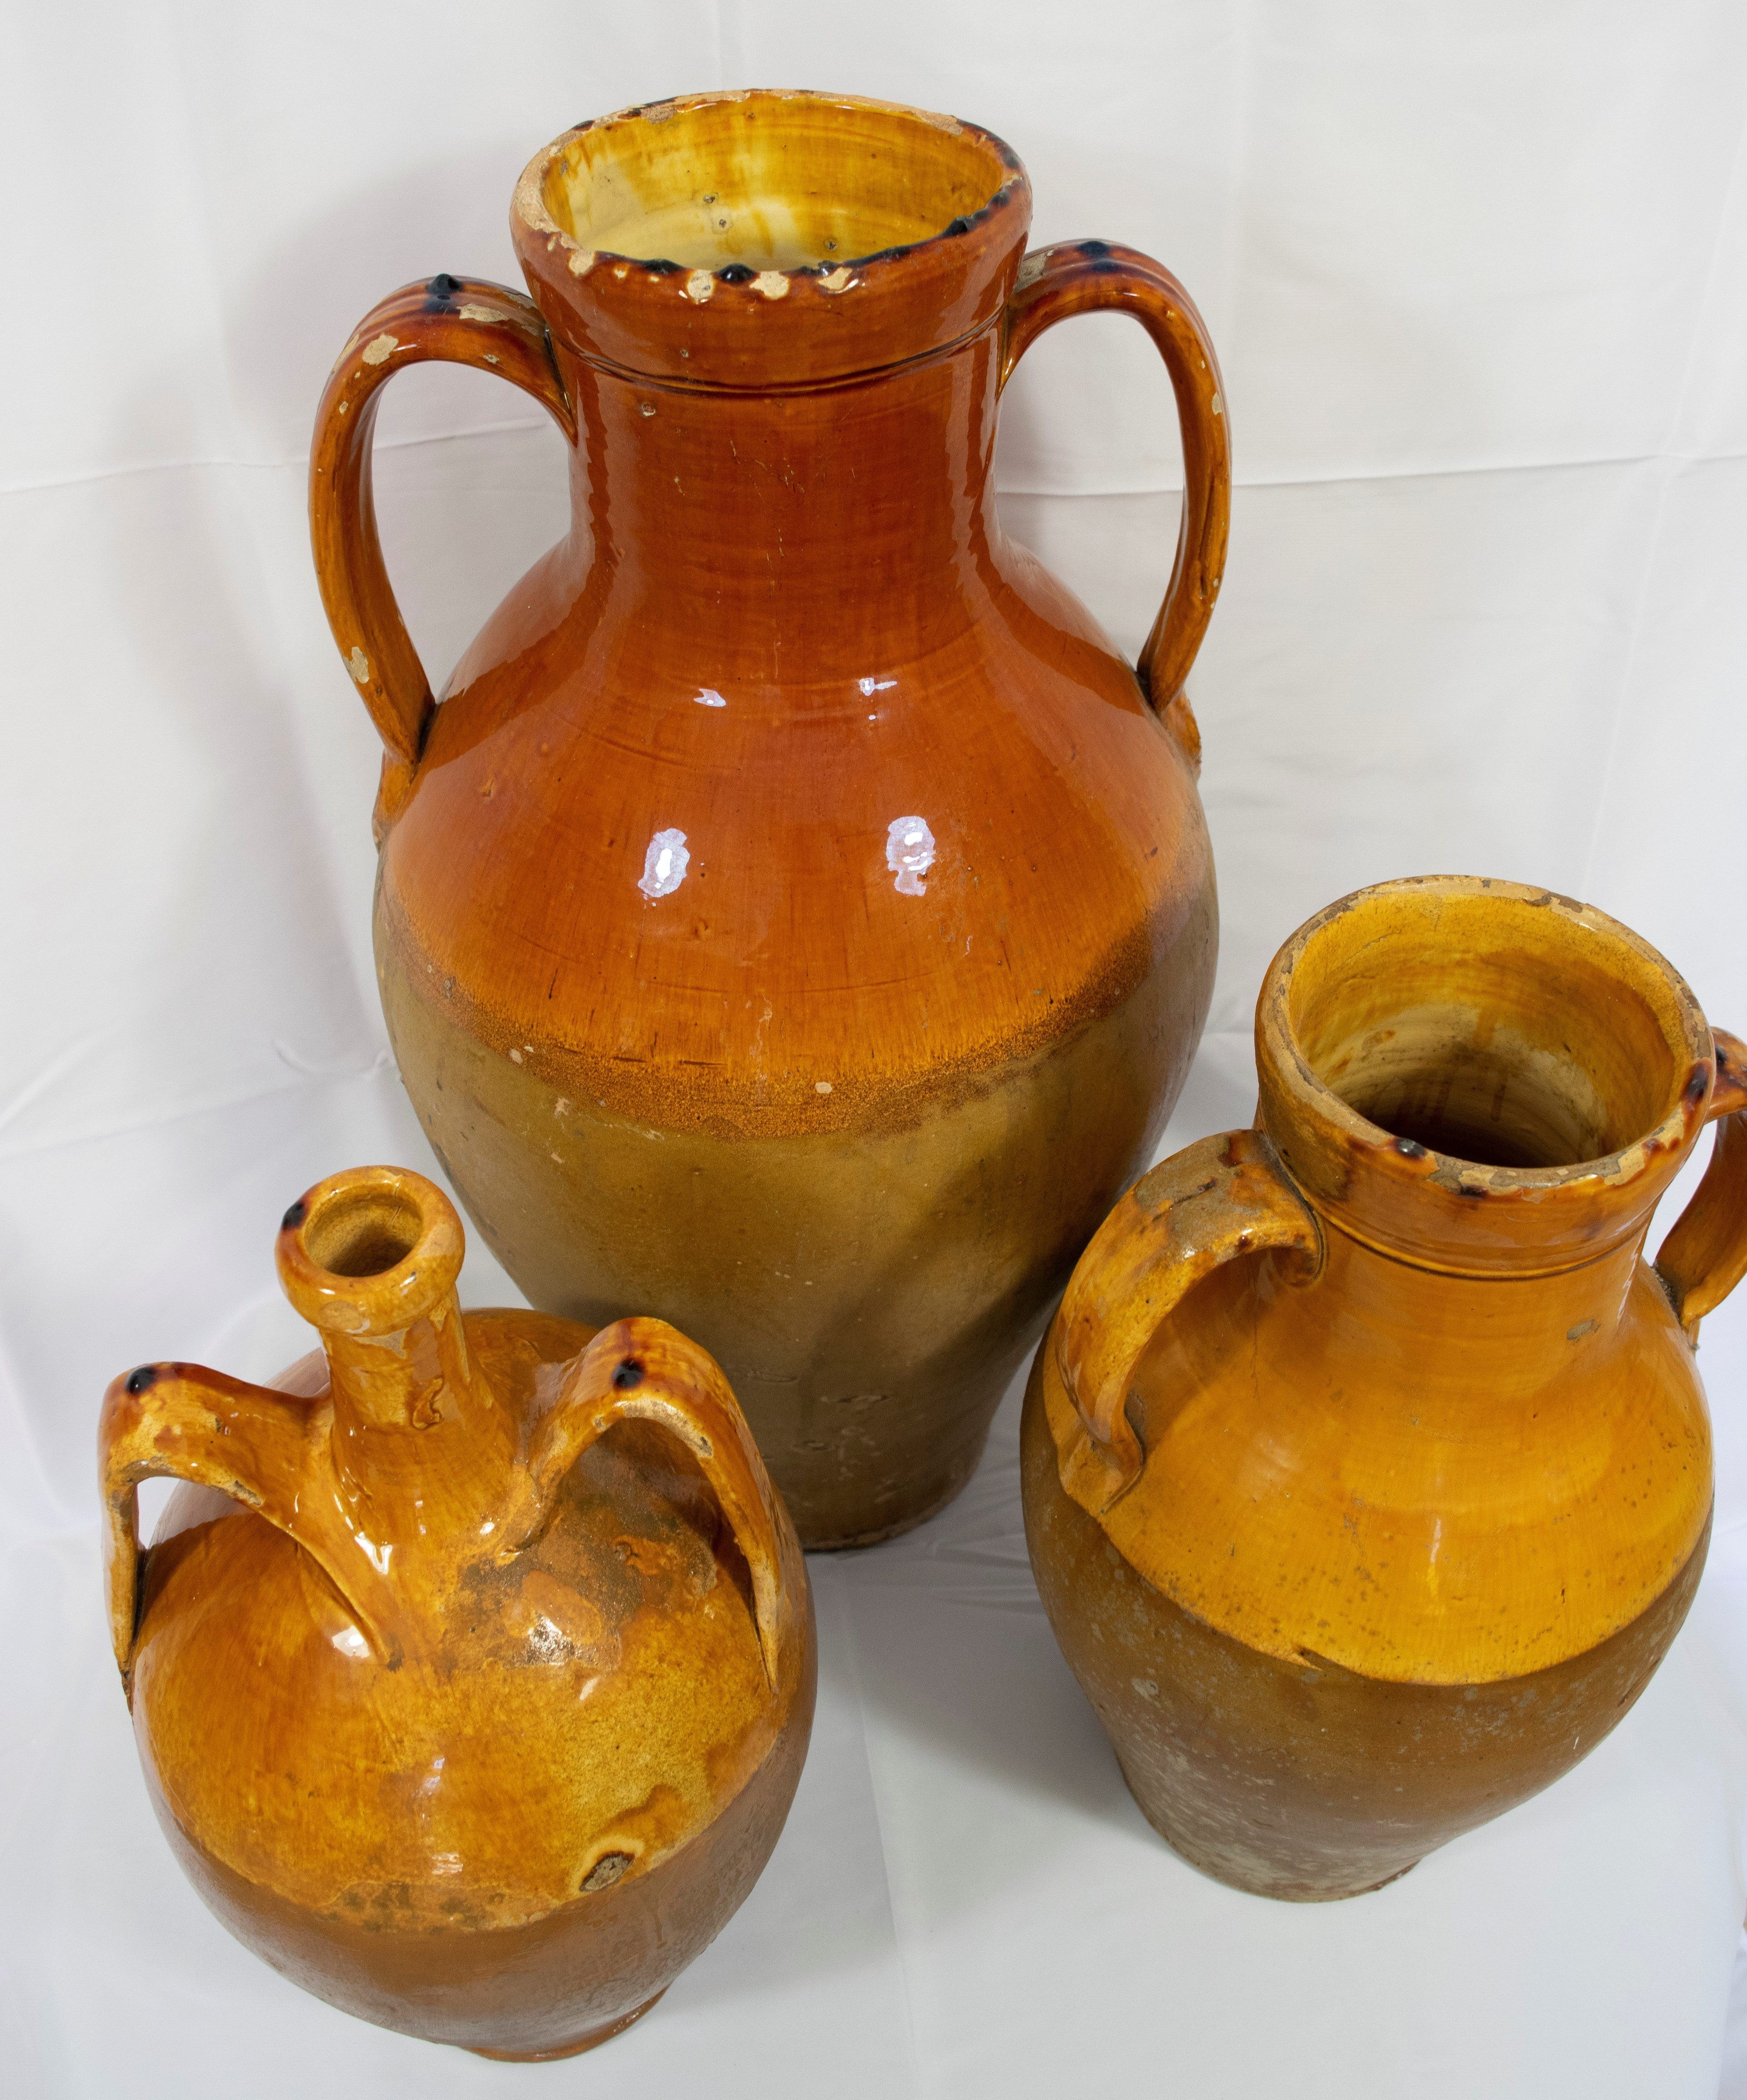 Lily Antiques image (6 of 7)